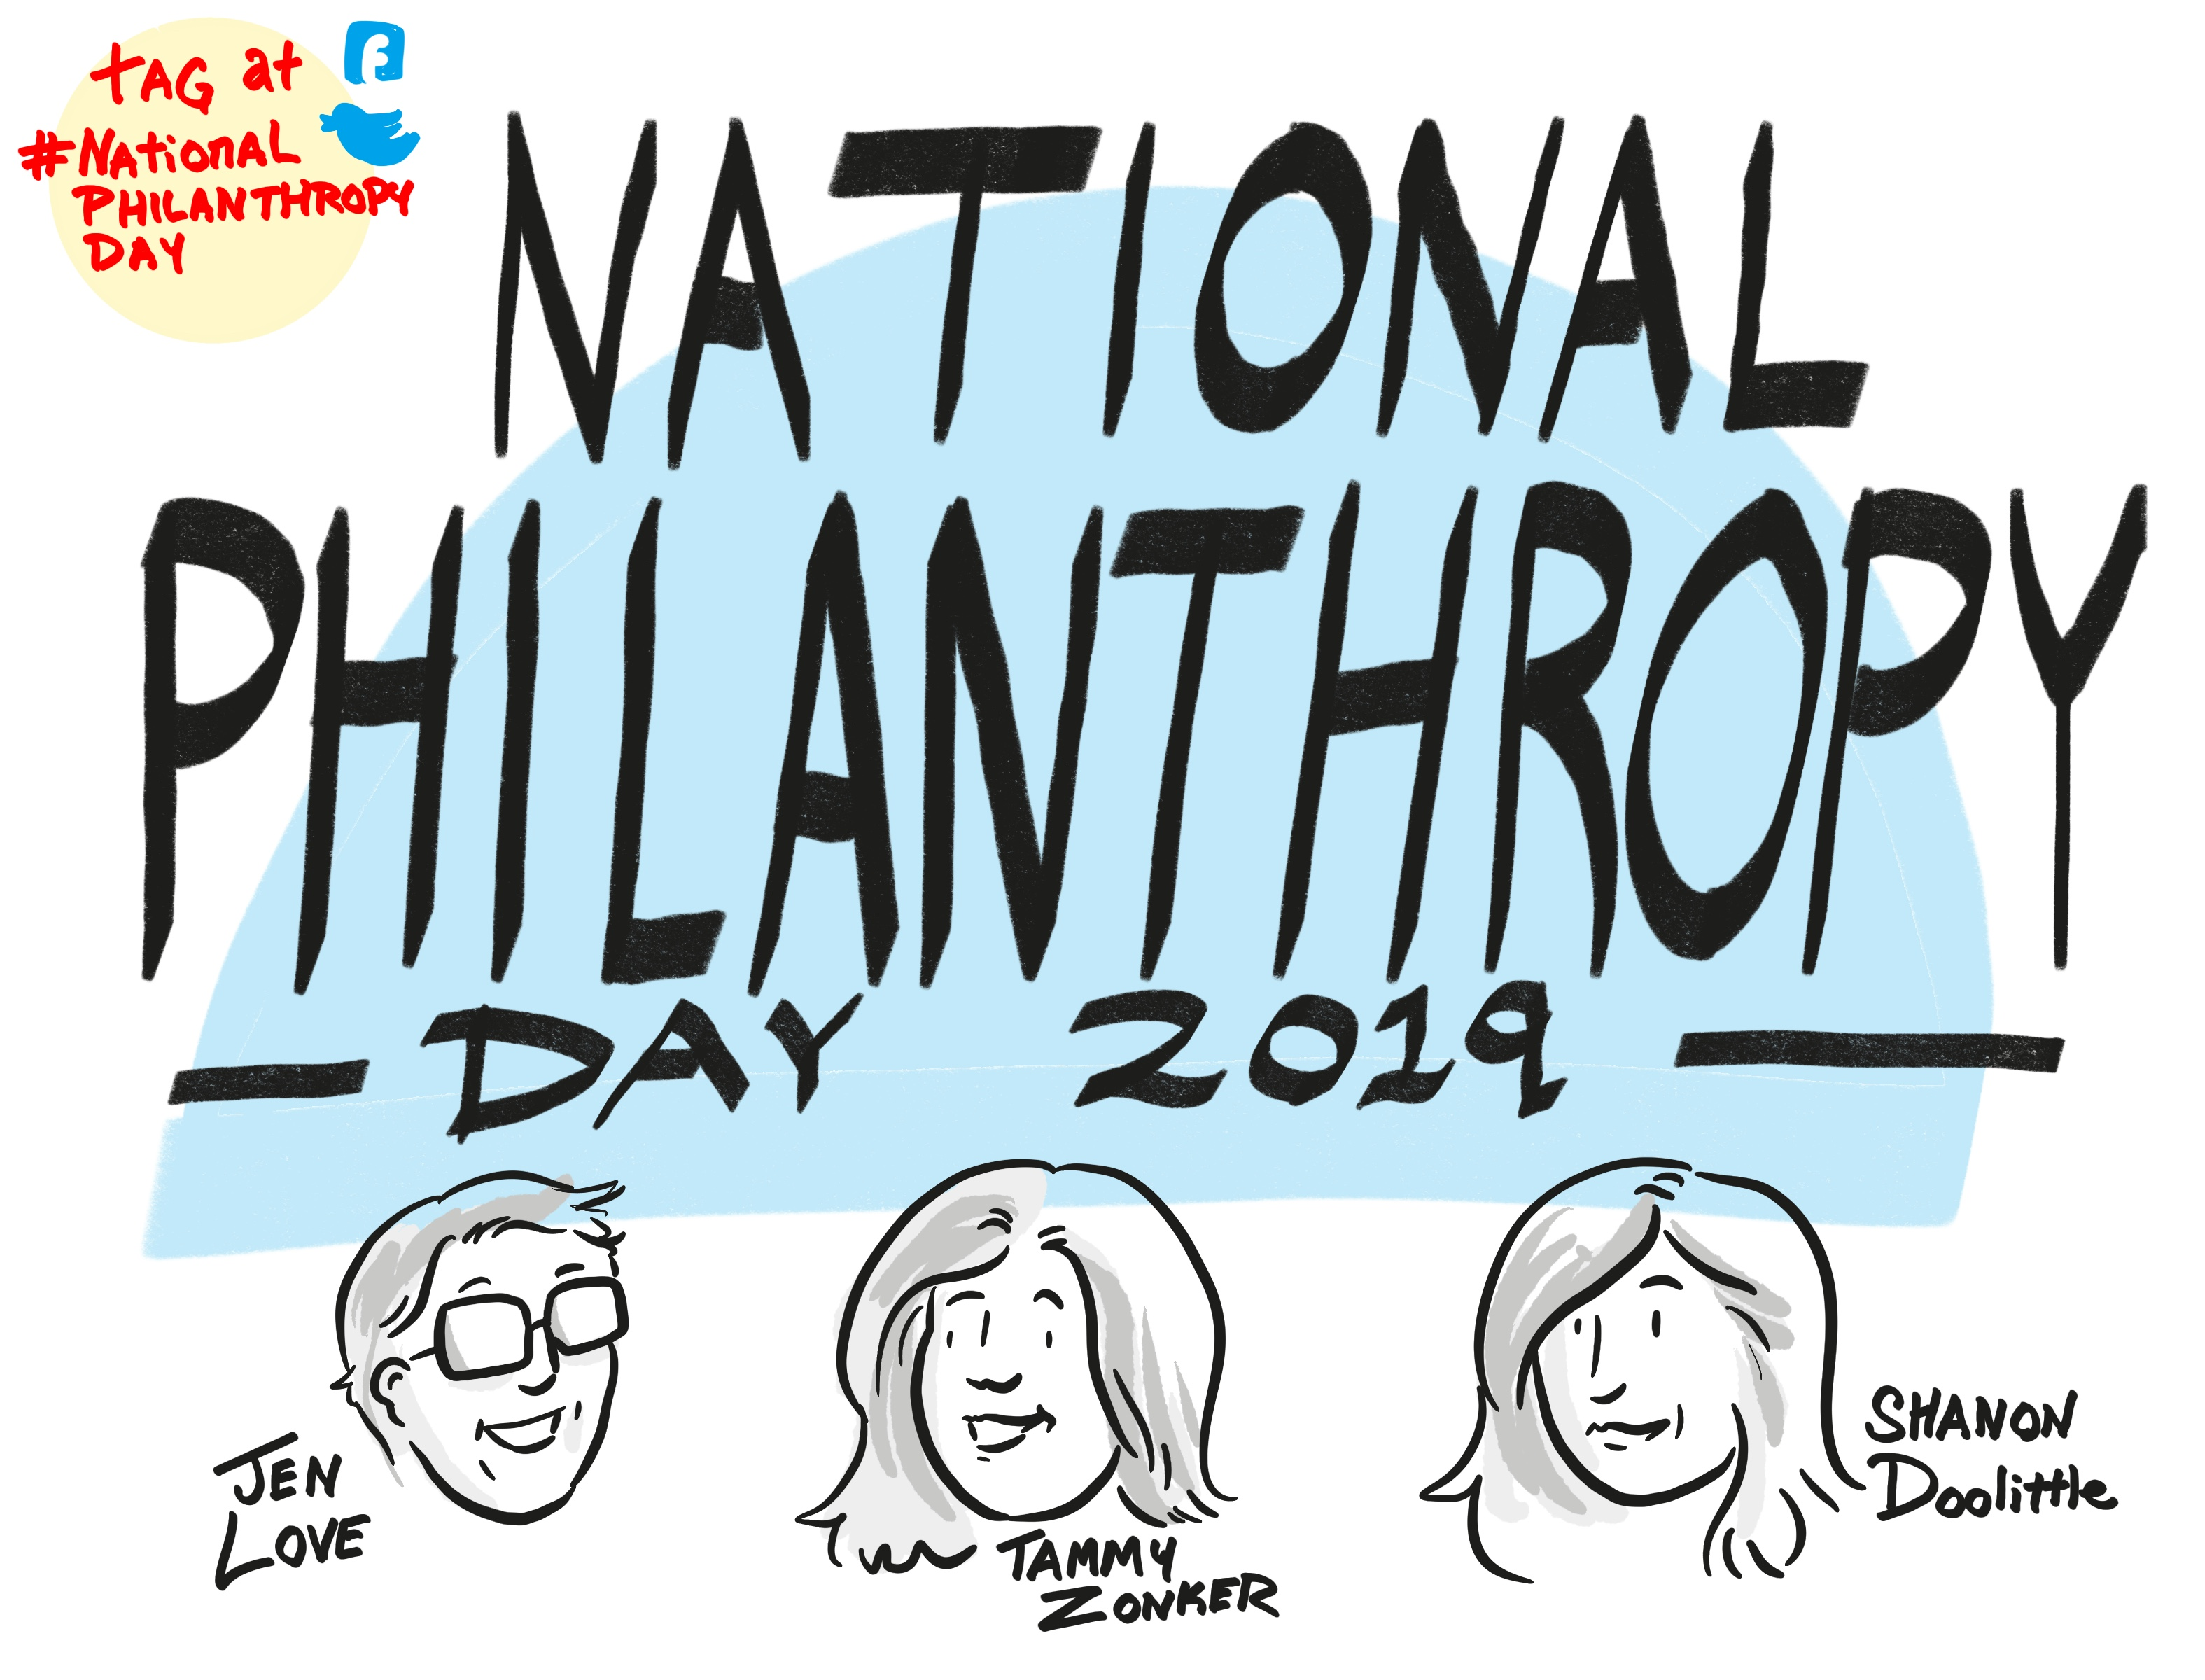 National Philanthropic Day 2019 title